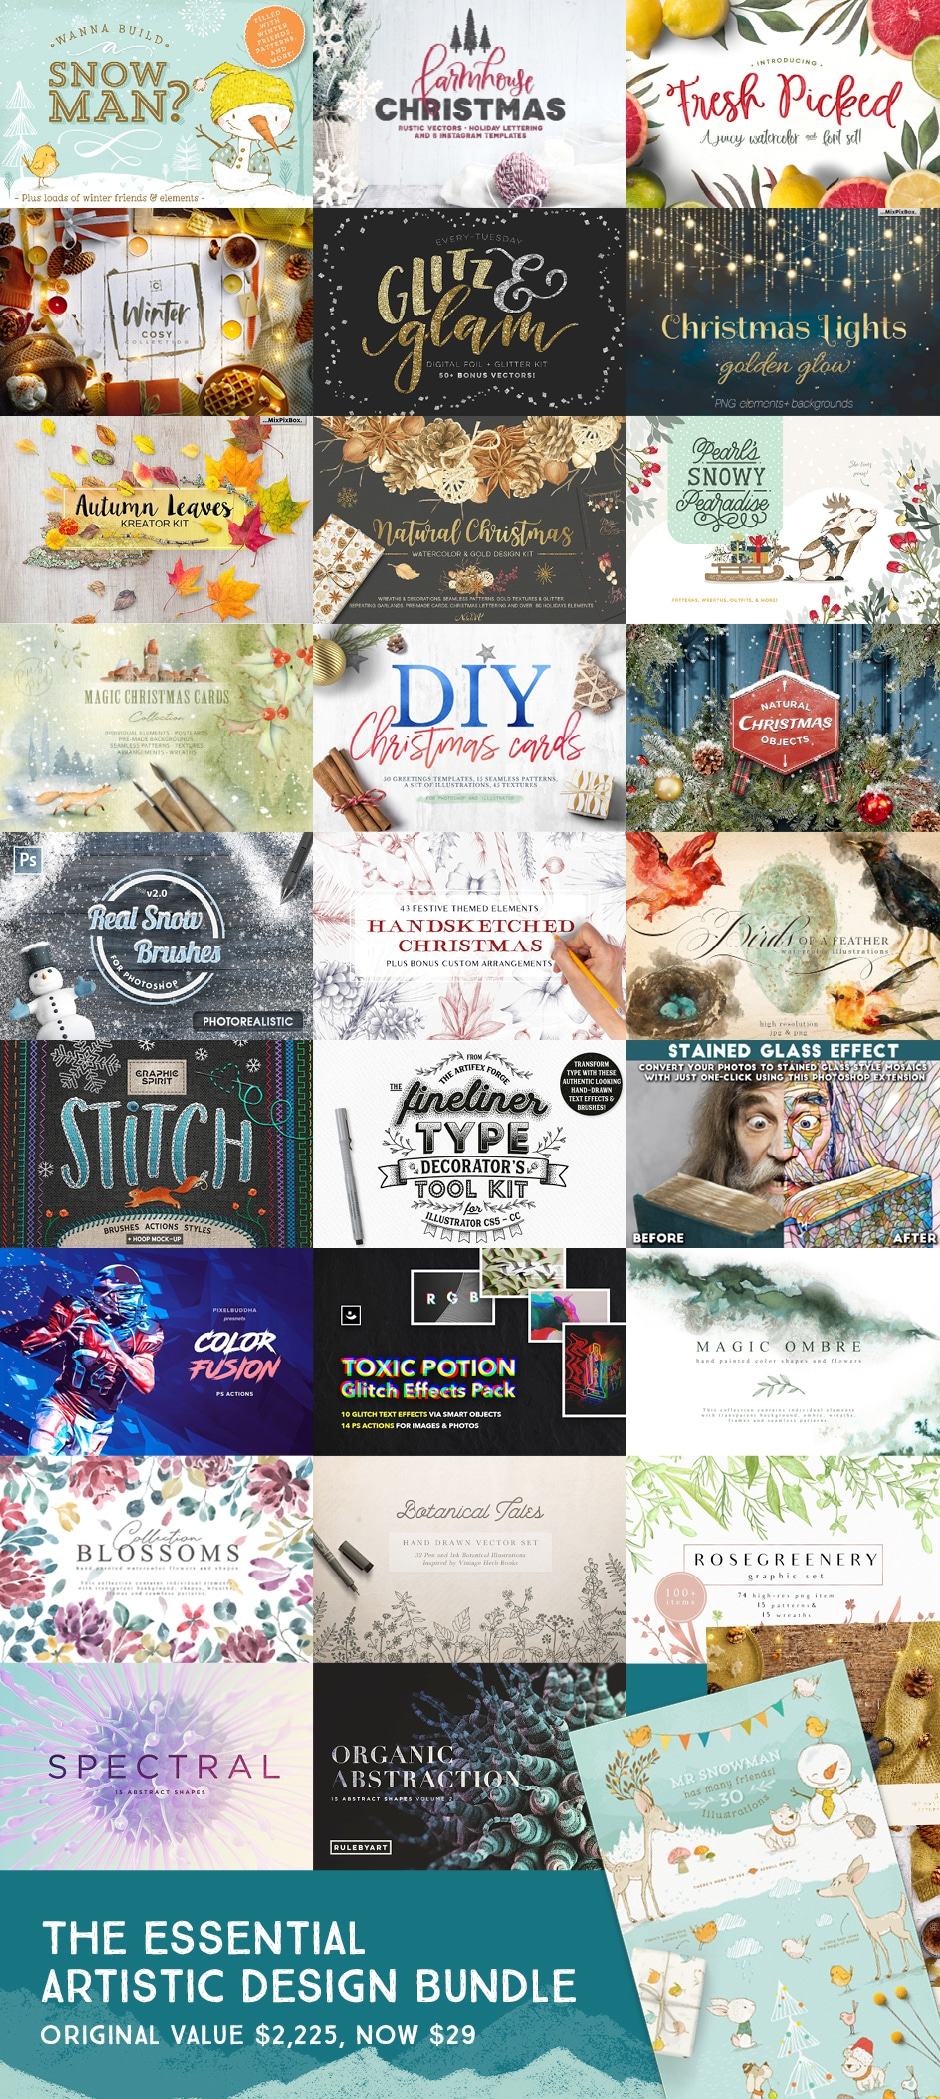 The Essential, Artistic Design Bundle (99% Off)  Festive Goodies